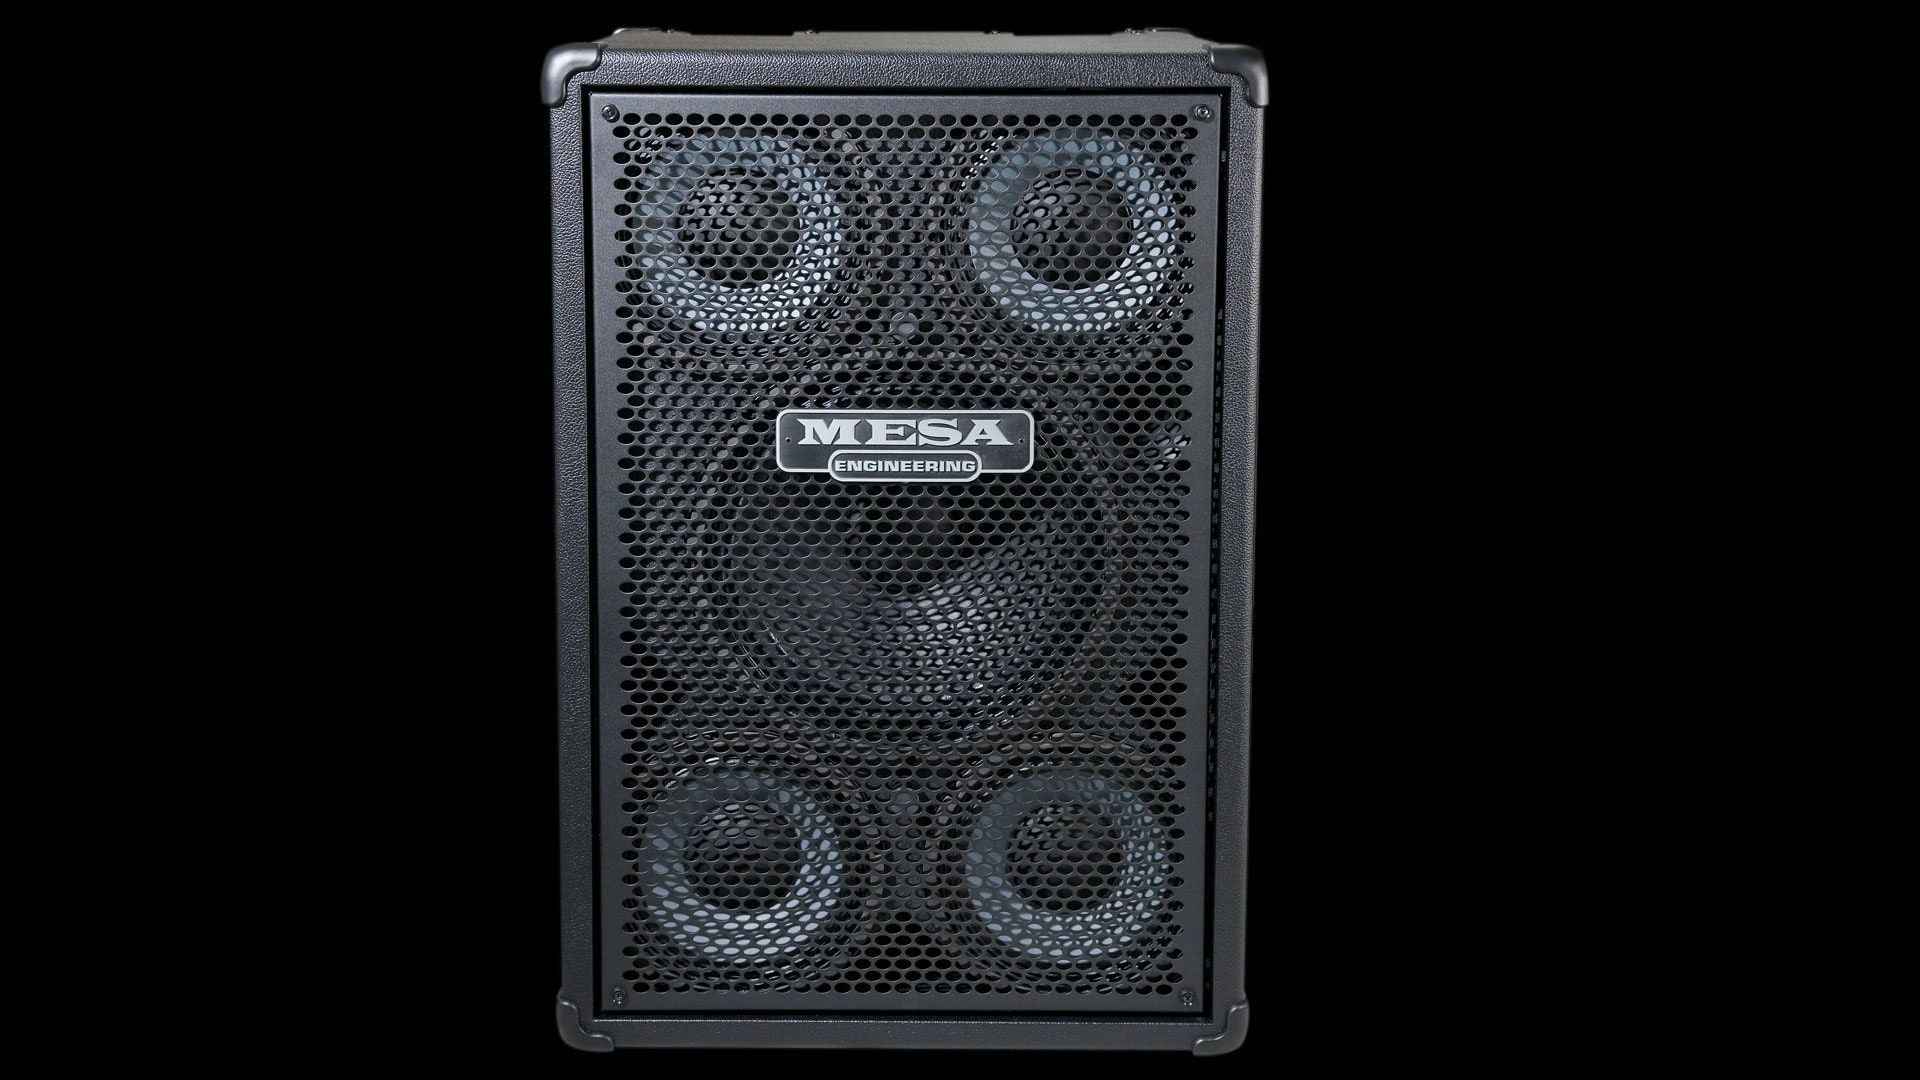 Standard Powerhouse 1000 B Cabinet | MESA/Boogie® on car speaker diagram, 4 ohm to 1 ohm, 2 ohm wiring diagram, 4 ohm vs 8 ohm, ohms law diagram, 8 ohm wiring diagram, 1 ohm stable wiring diagram, parts of a speaker diagram, 4 ohm dvc wiring, 4 ohm subwoofer, amplifier circuit diagram, 4 ohm to 2 ohm, speakers in parallel diagram, 4 ohm stereo speakers, 4 ohm dual voice coil wiring, bridge subwoofer wiring diagram, 4 ohm speakers in series, subwoofer and amp installation diagram, 4 ohm sub wiring,